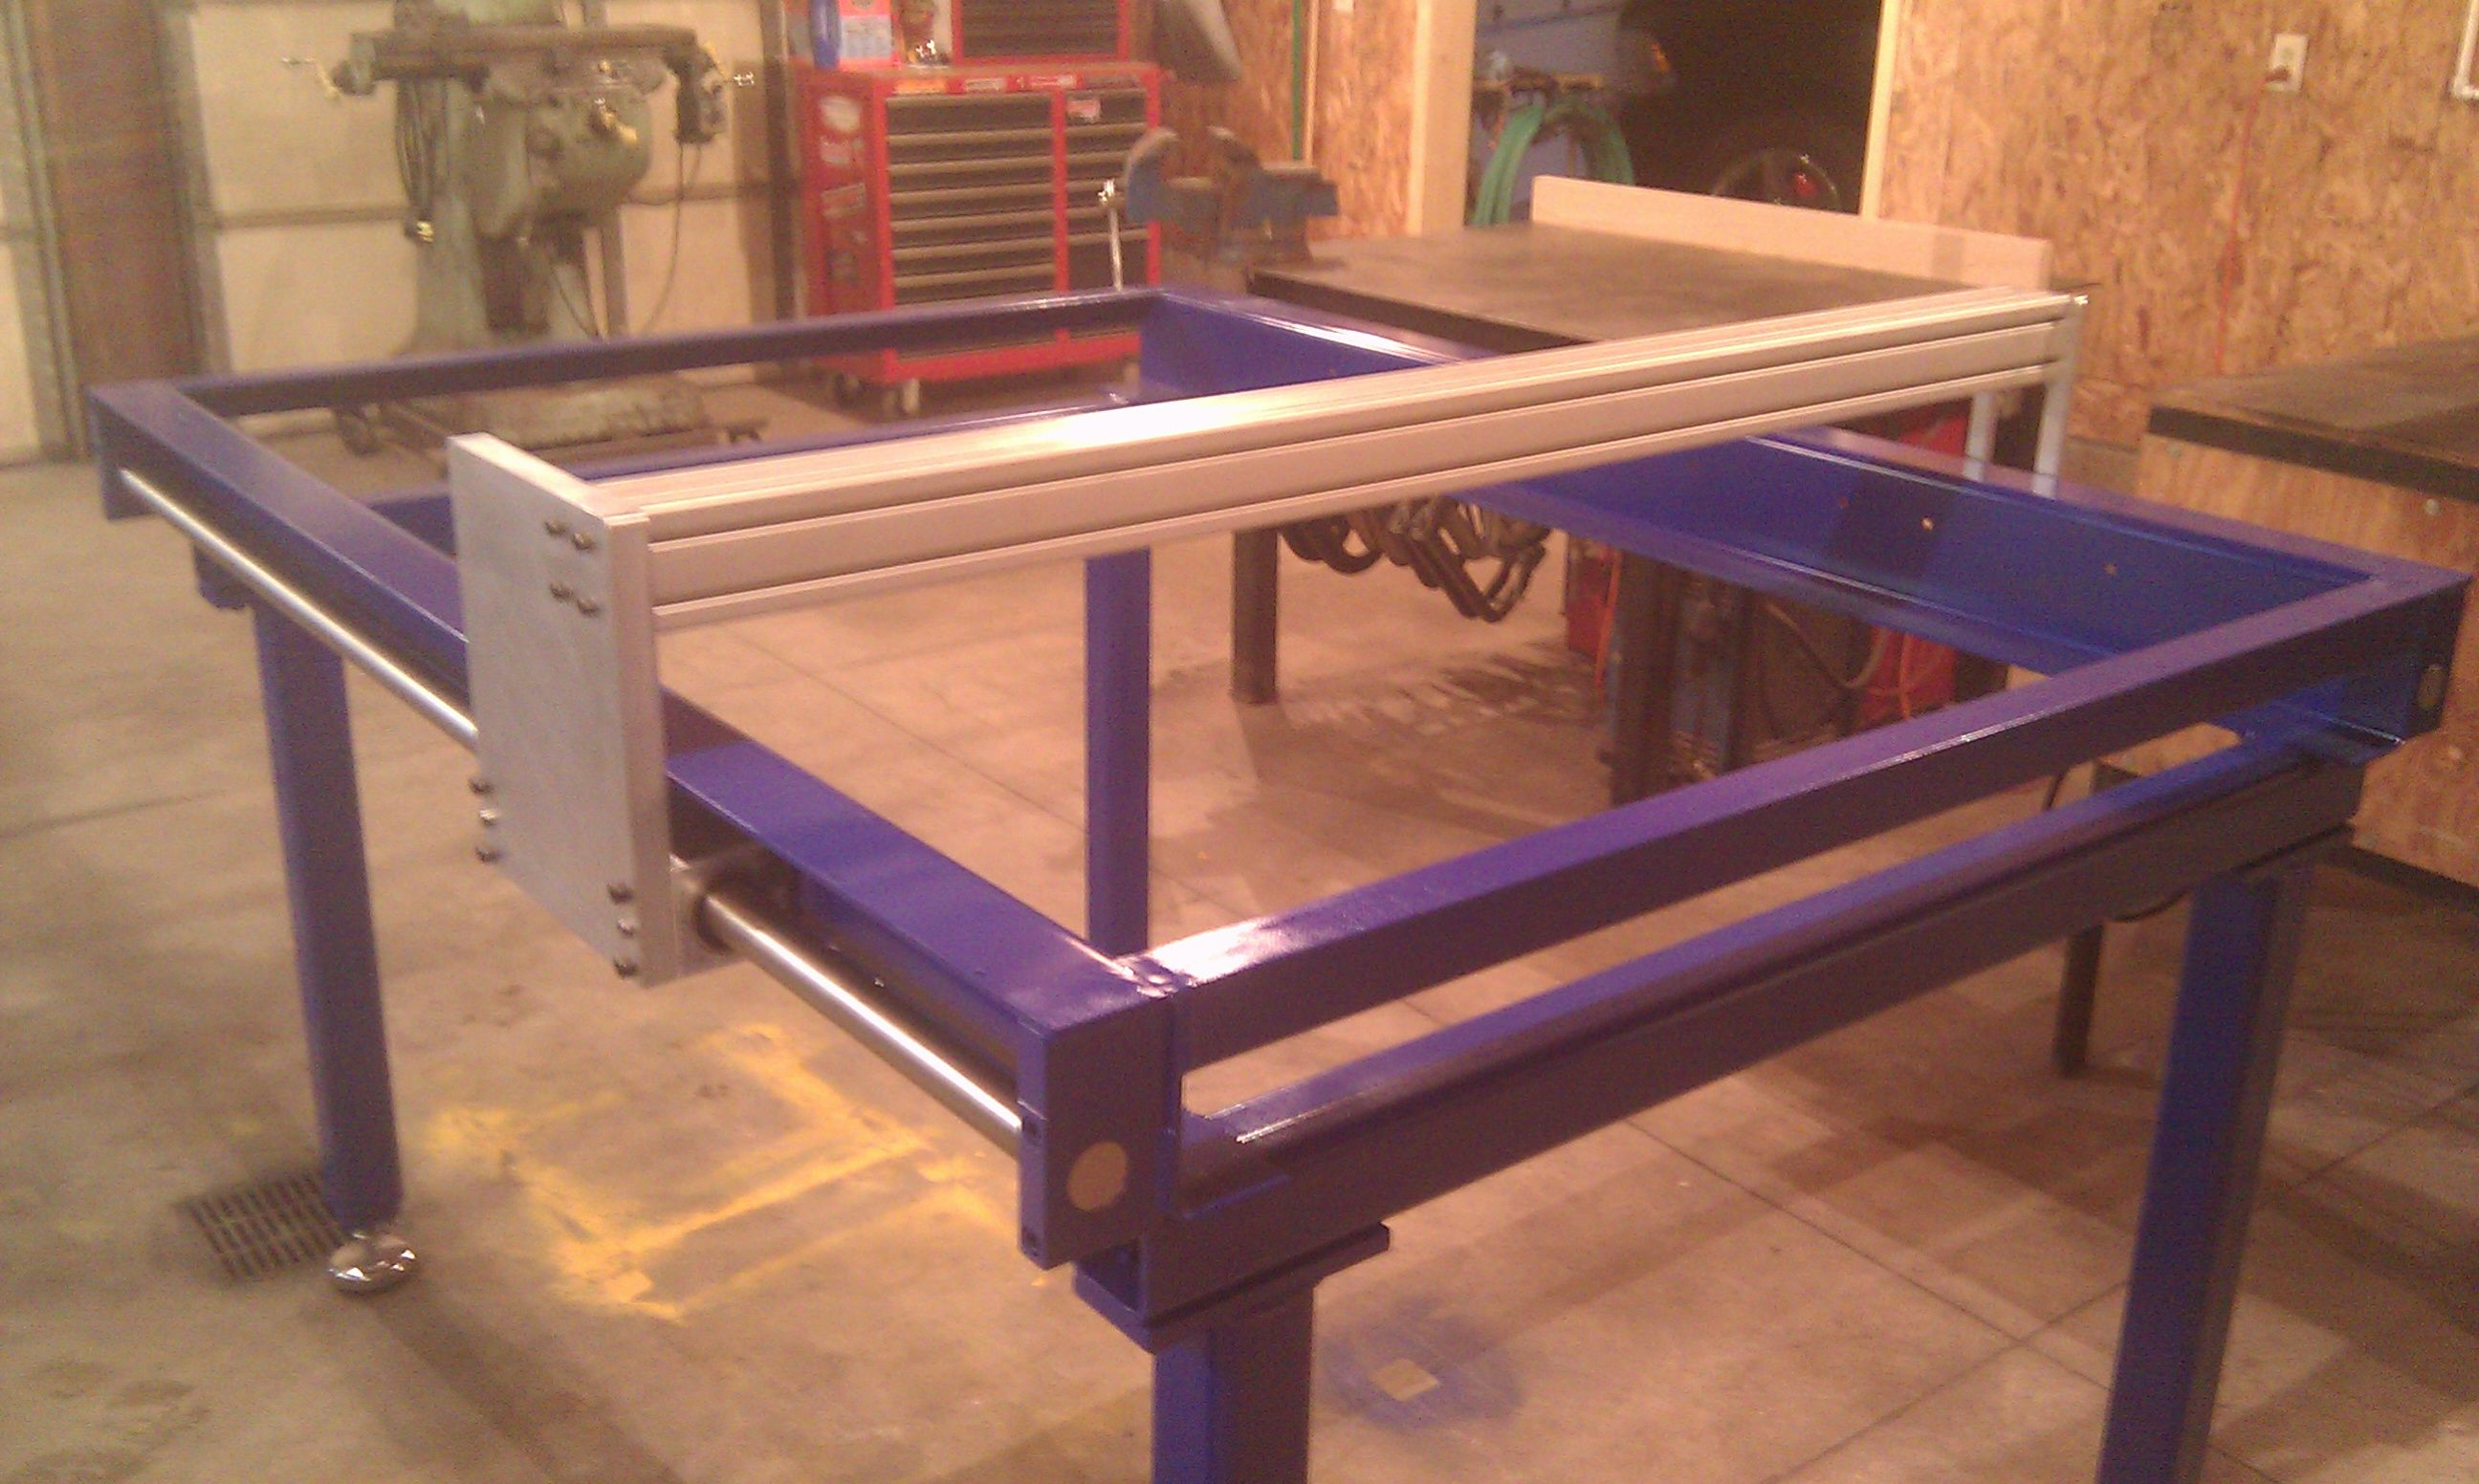 upgrade net cutting table drupal x machine cnc axis plasma